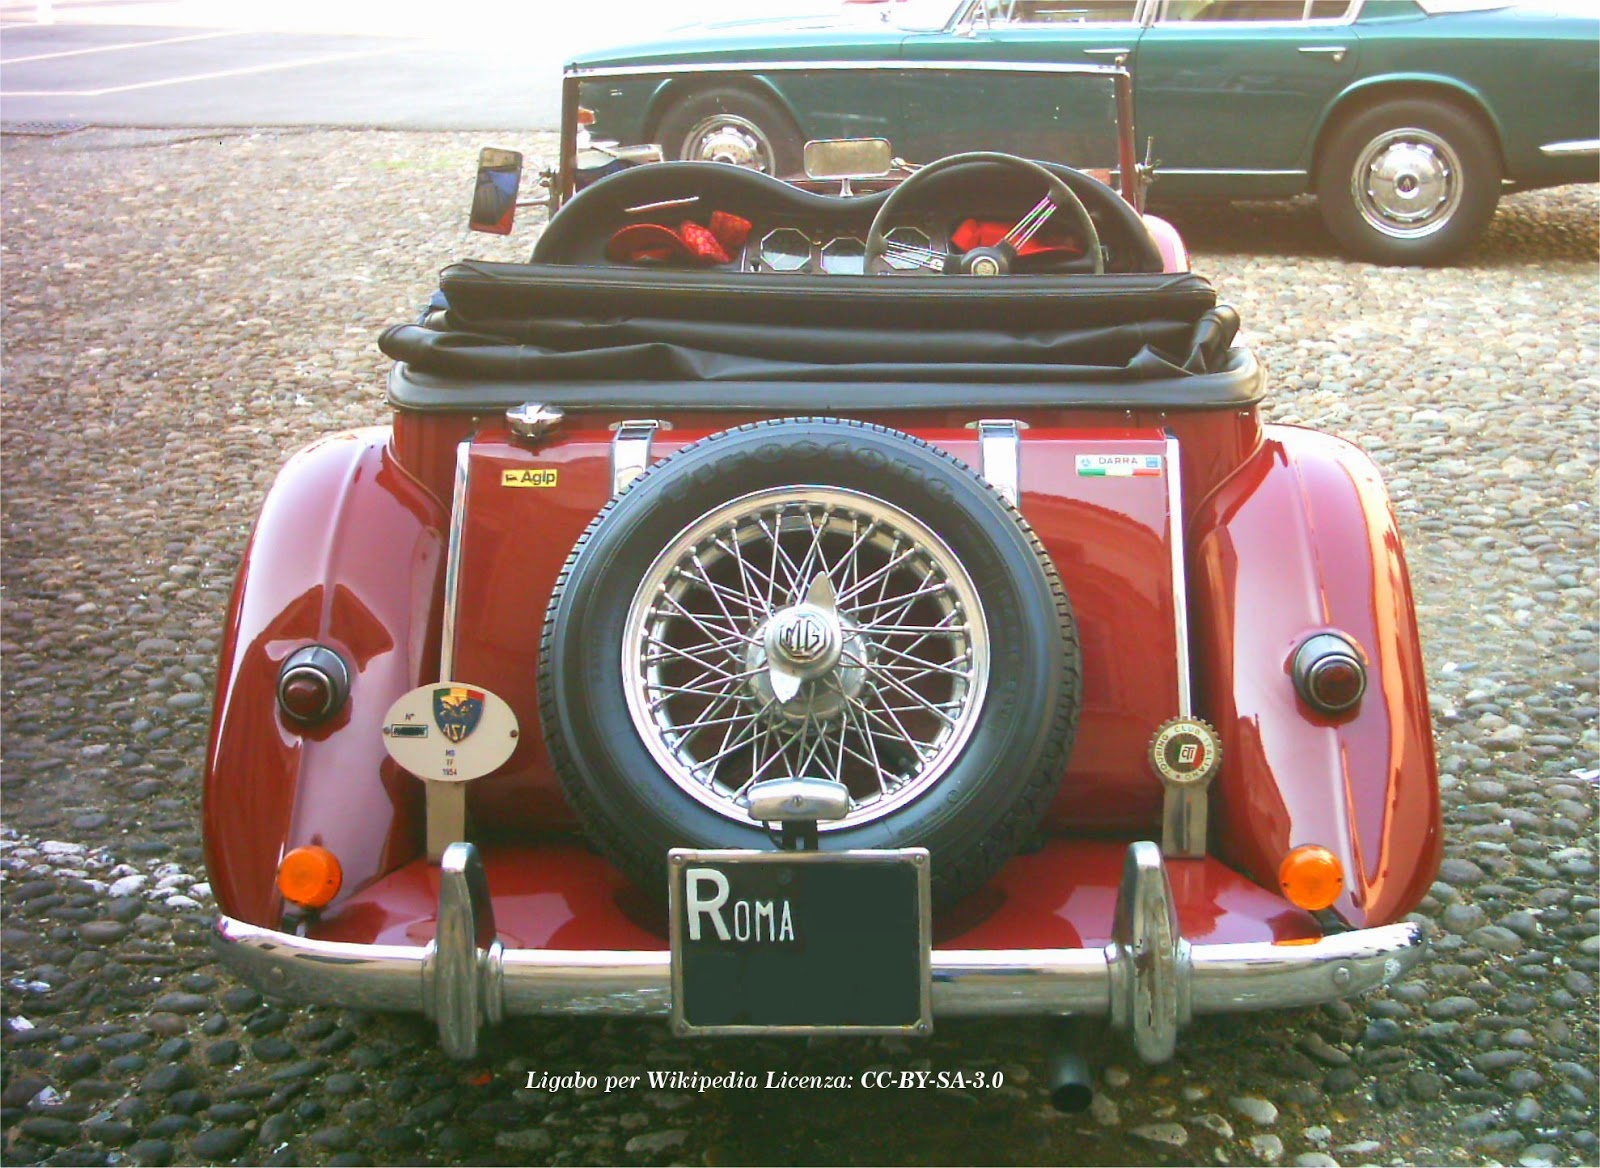 The MG TF was the last of the traditionally-styled MGs with a wood-framed body, separate wings, and running boards.